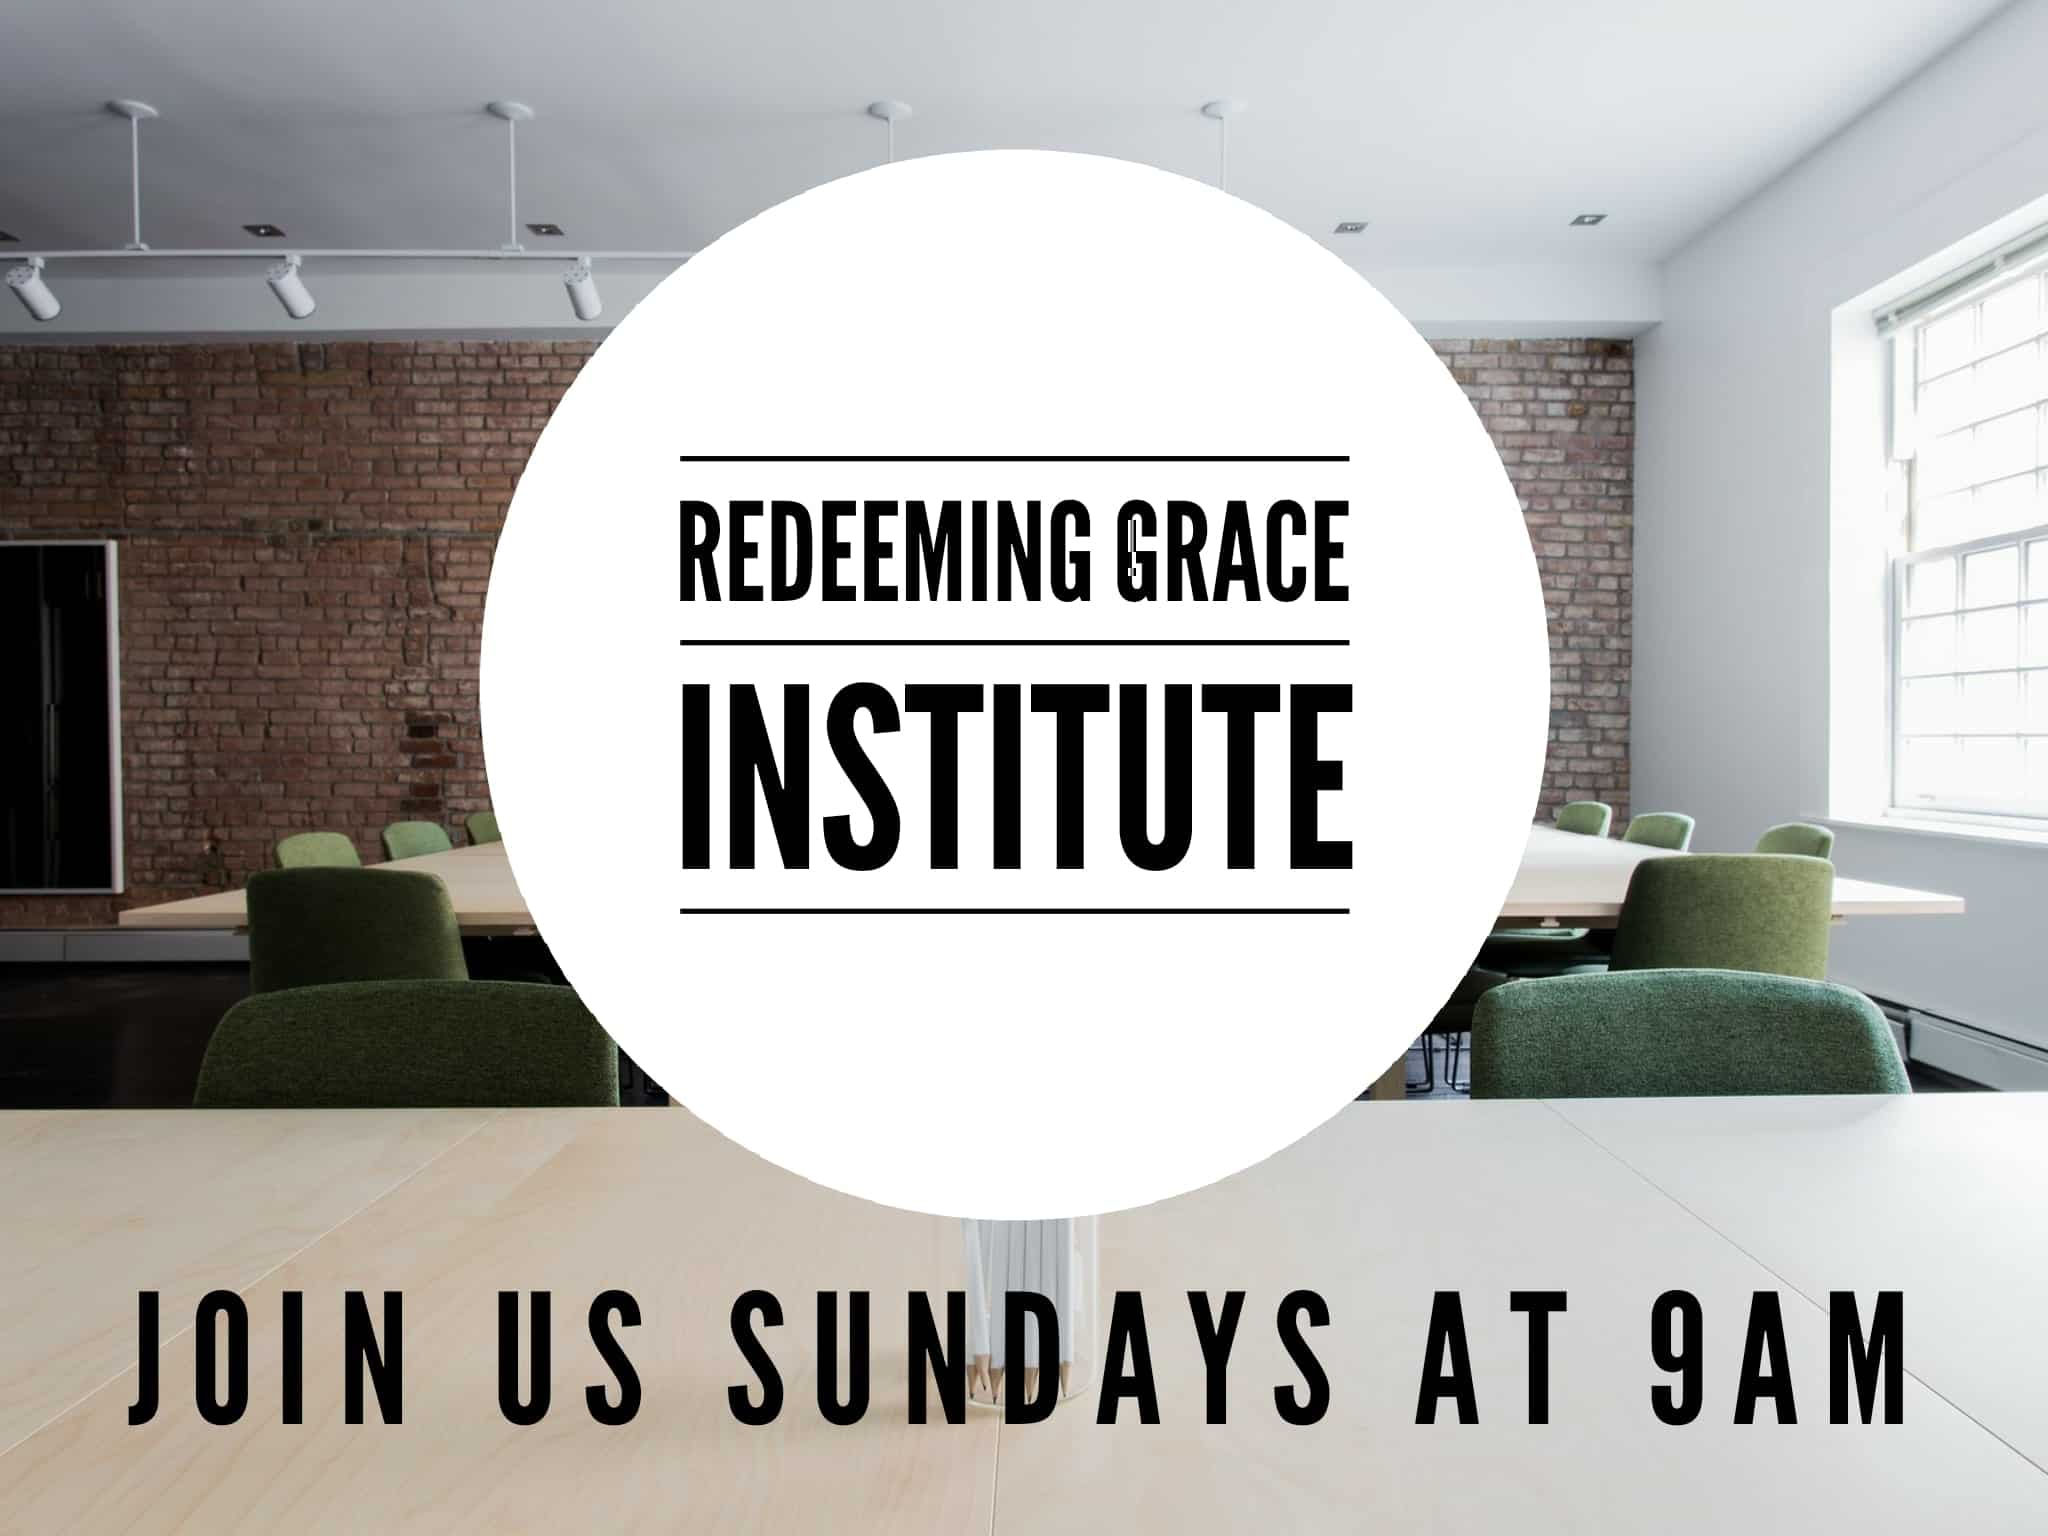 redeeming-grace-church-pittsburgh-pa-institute